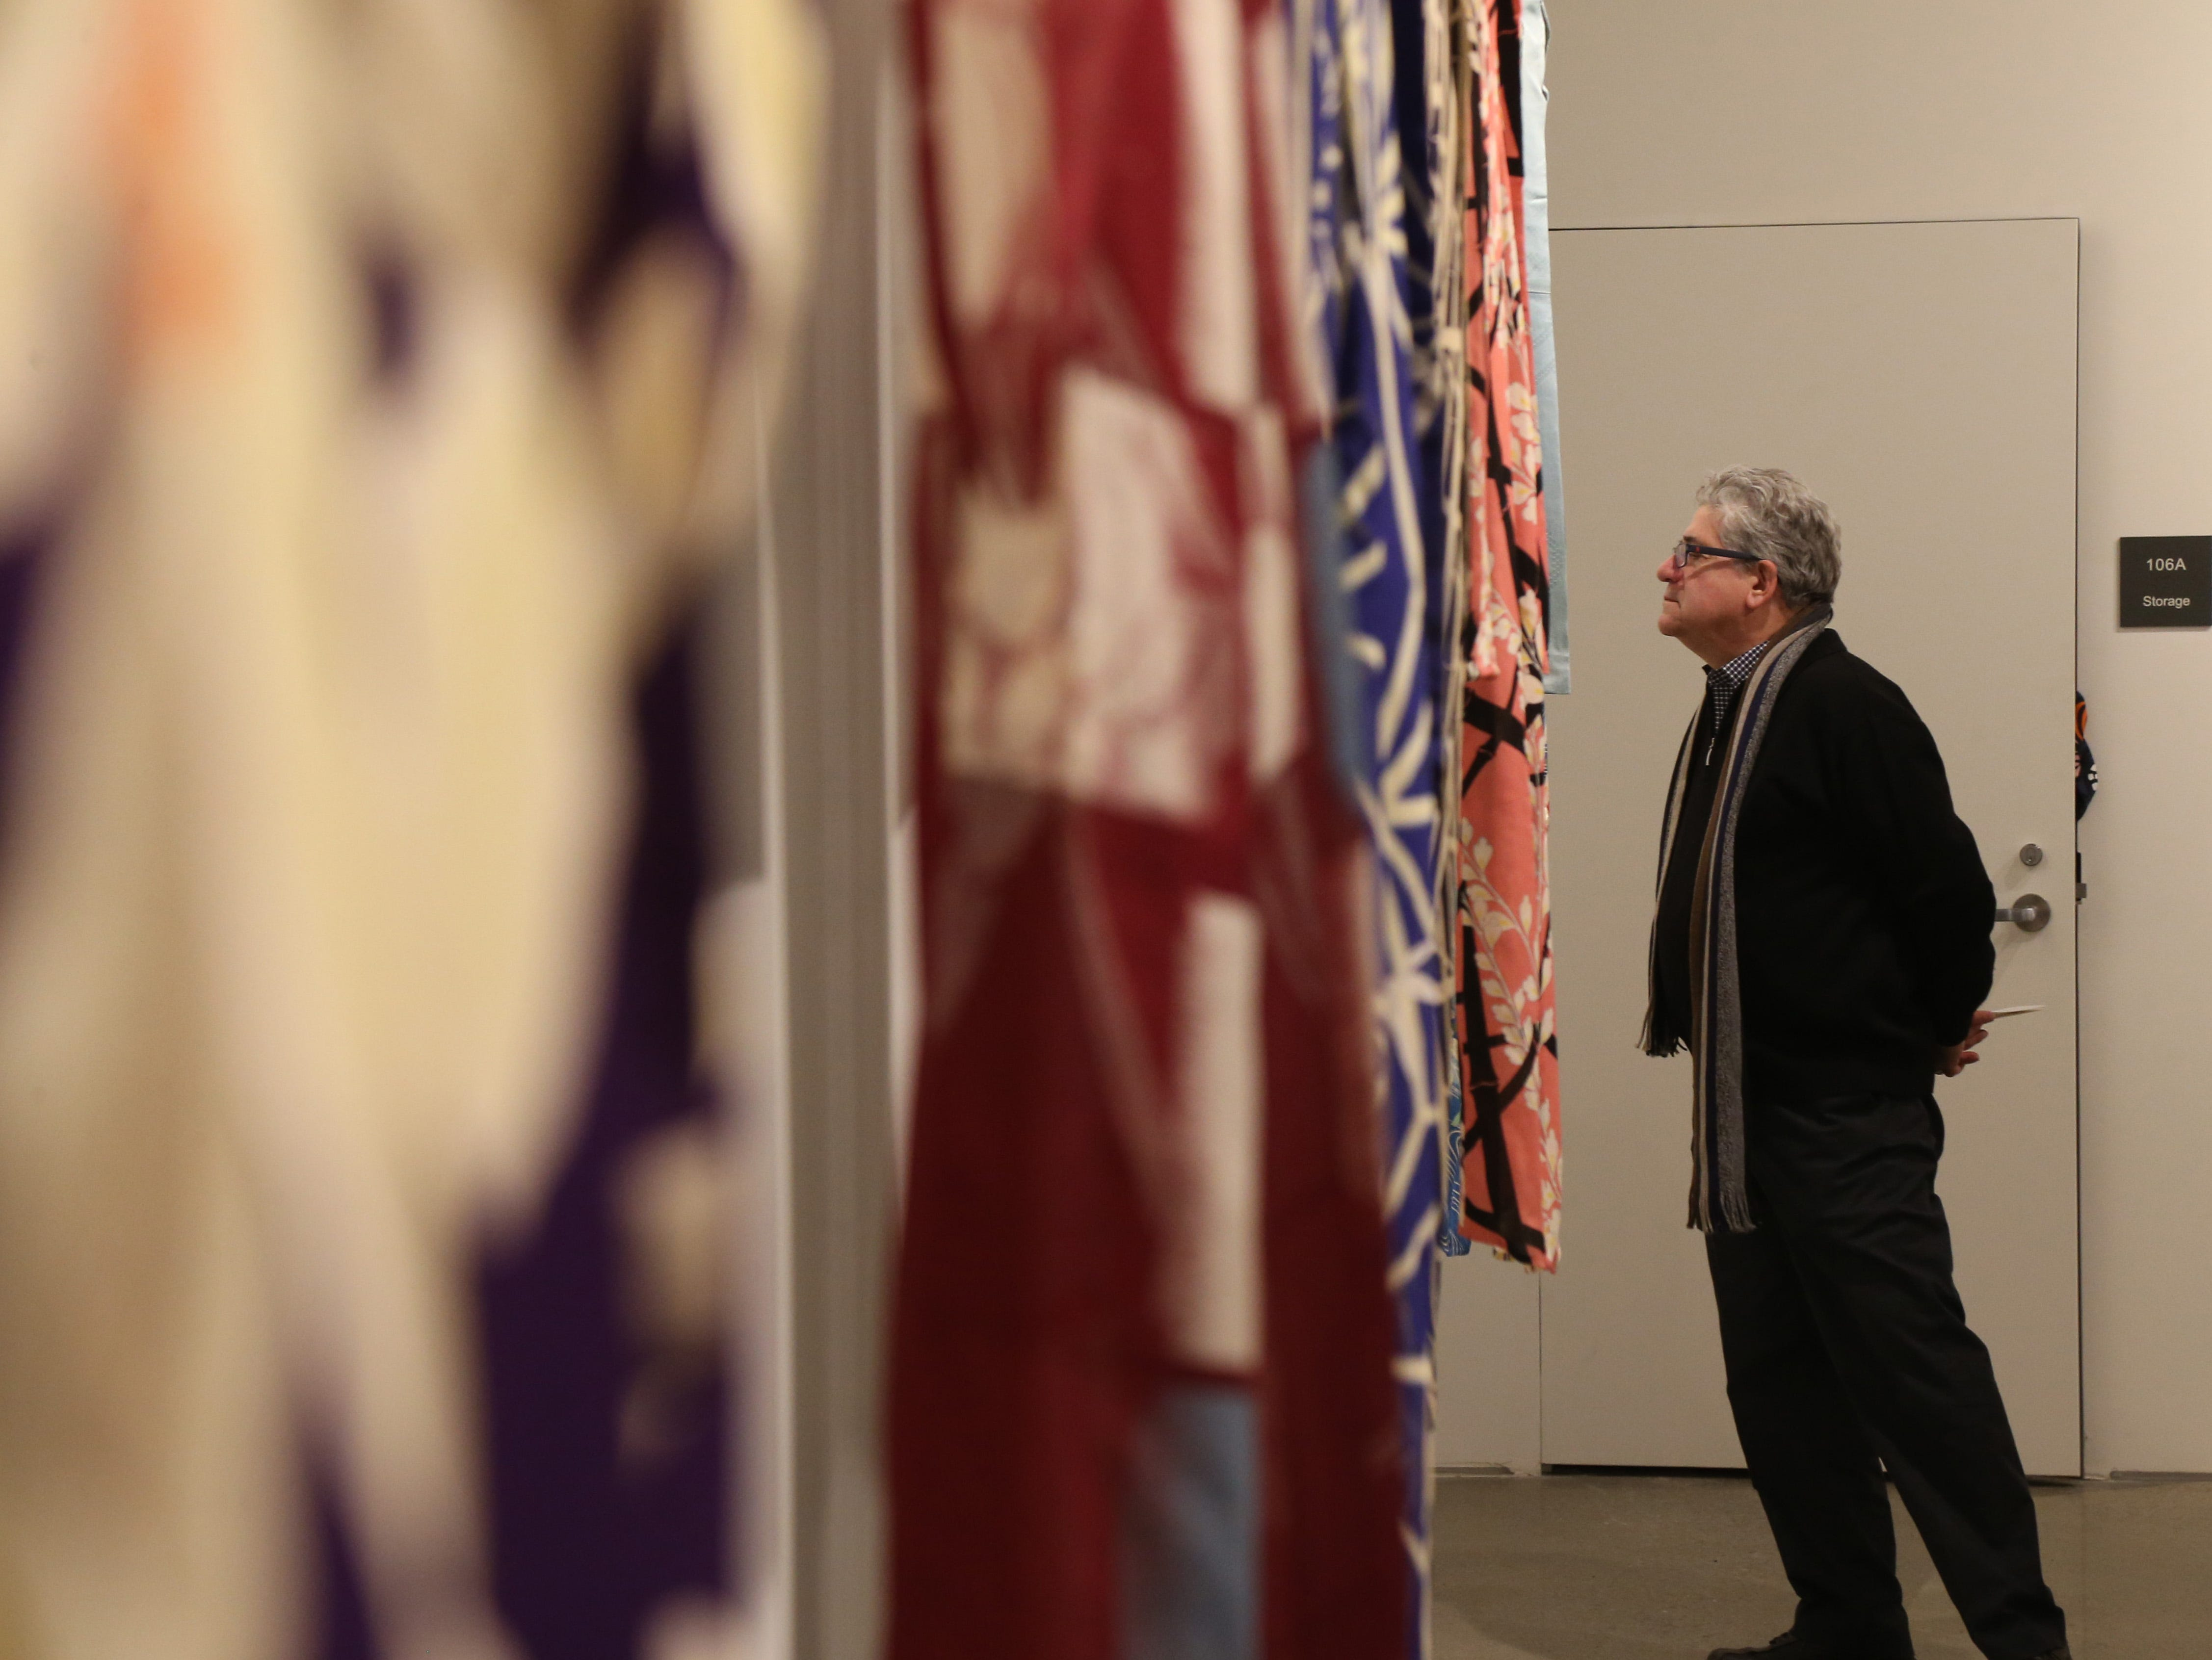 Irving Solero of Clinton inspects some of the Japanese garments & textiles on display in the fashion gallery at Marist College's Steel Plant Studios in Poughkeepsie on February 1, 2019.